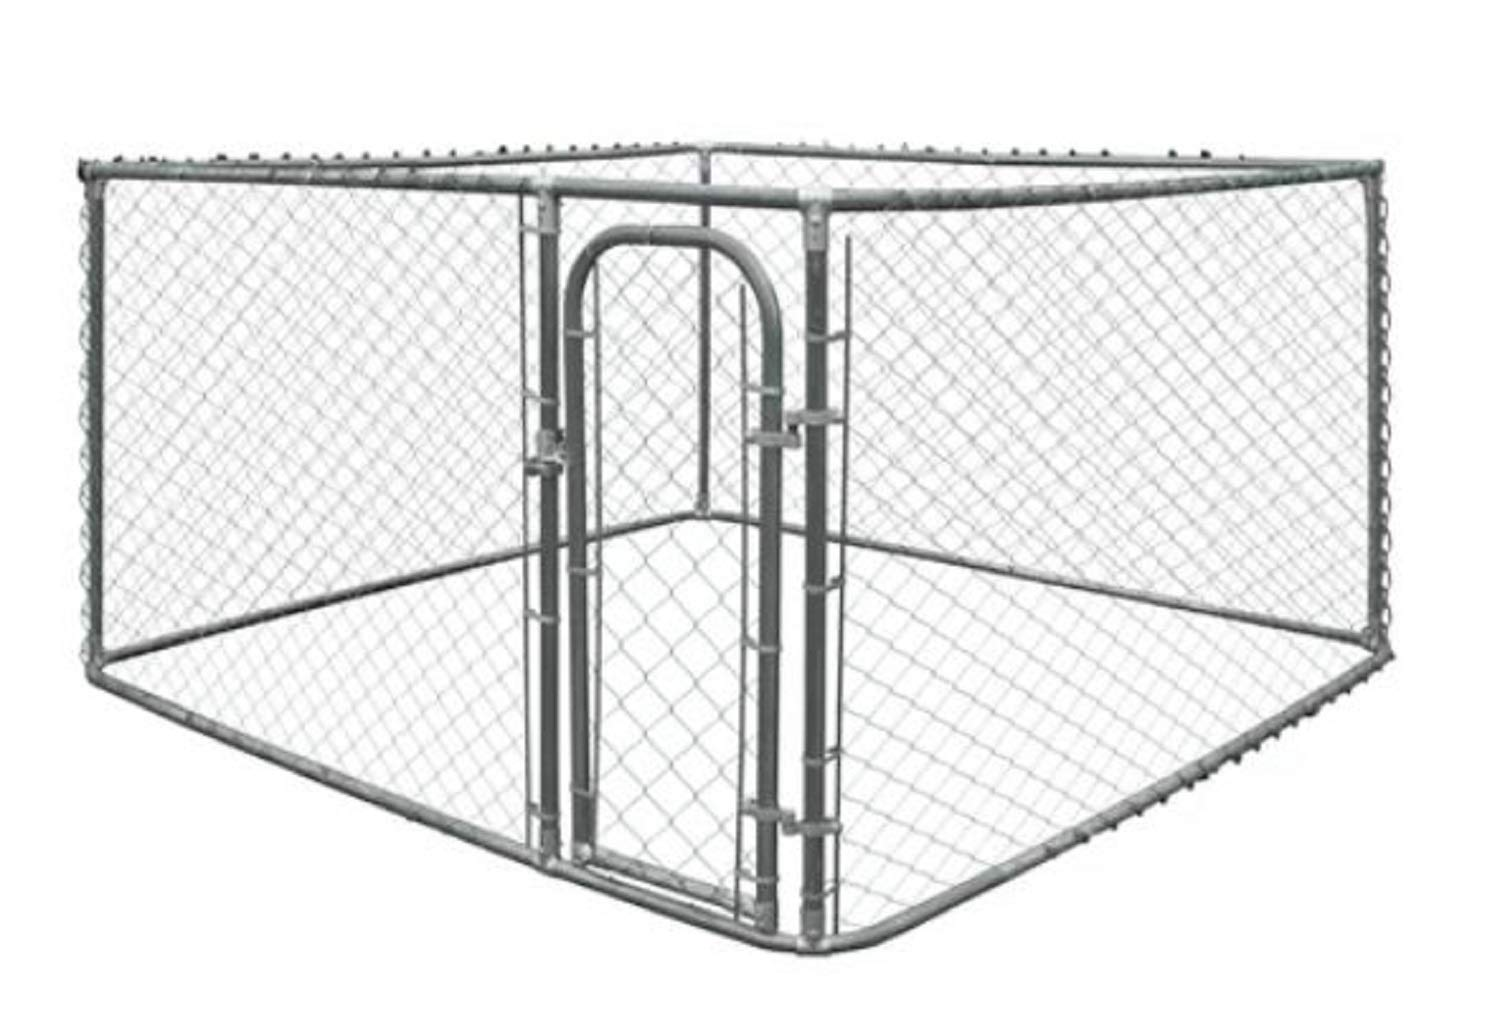 Chain Link Kennel. Merlin DIY Chain Link Kennel Designed with Your Dog's Comfort and Safety in Mind 72  H x 84  W x 84  D